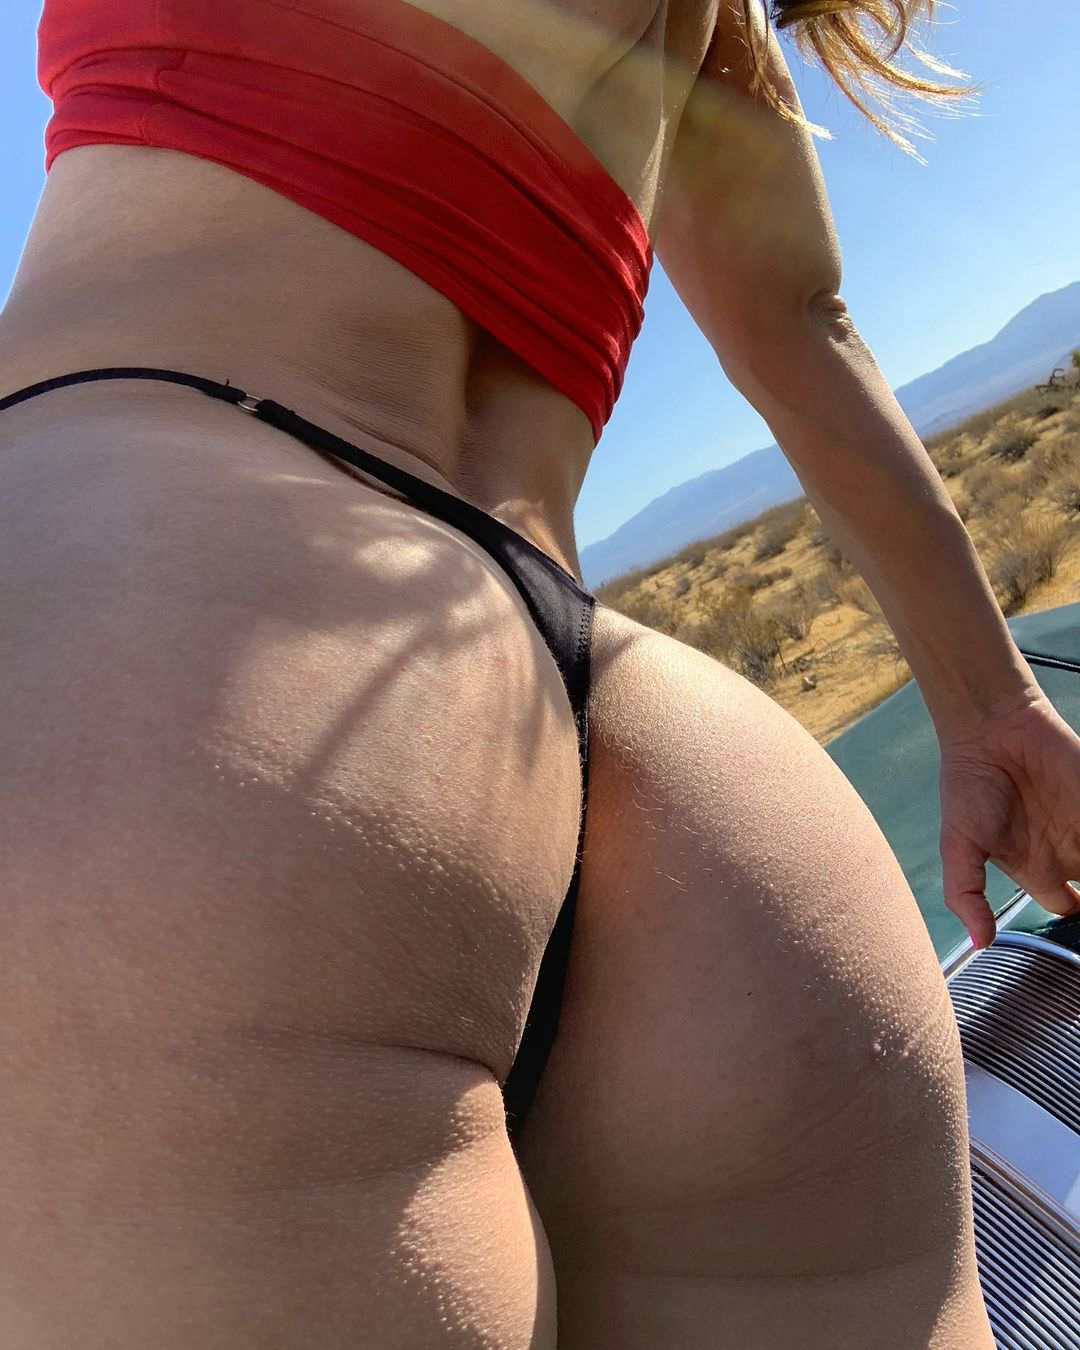 FULL VIDEO: Abbie Maley Nude Onlyfans Leaked!